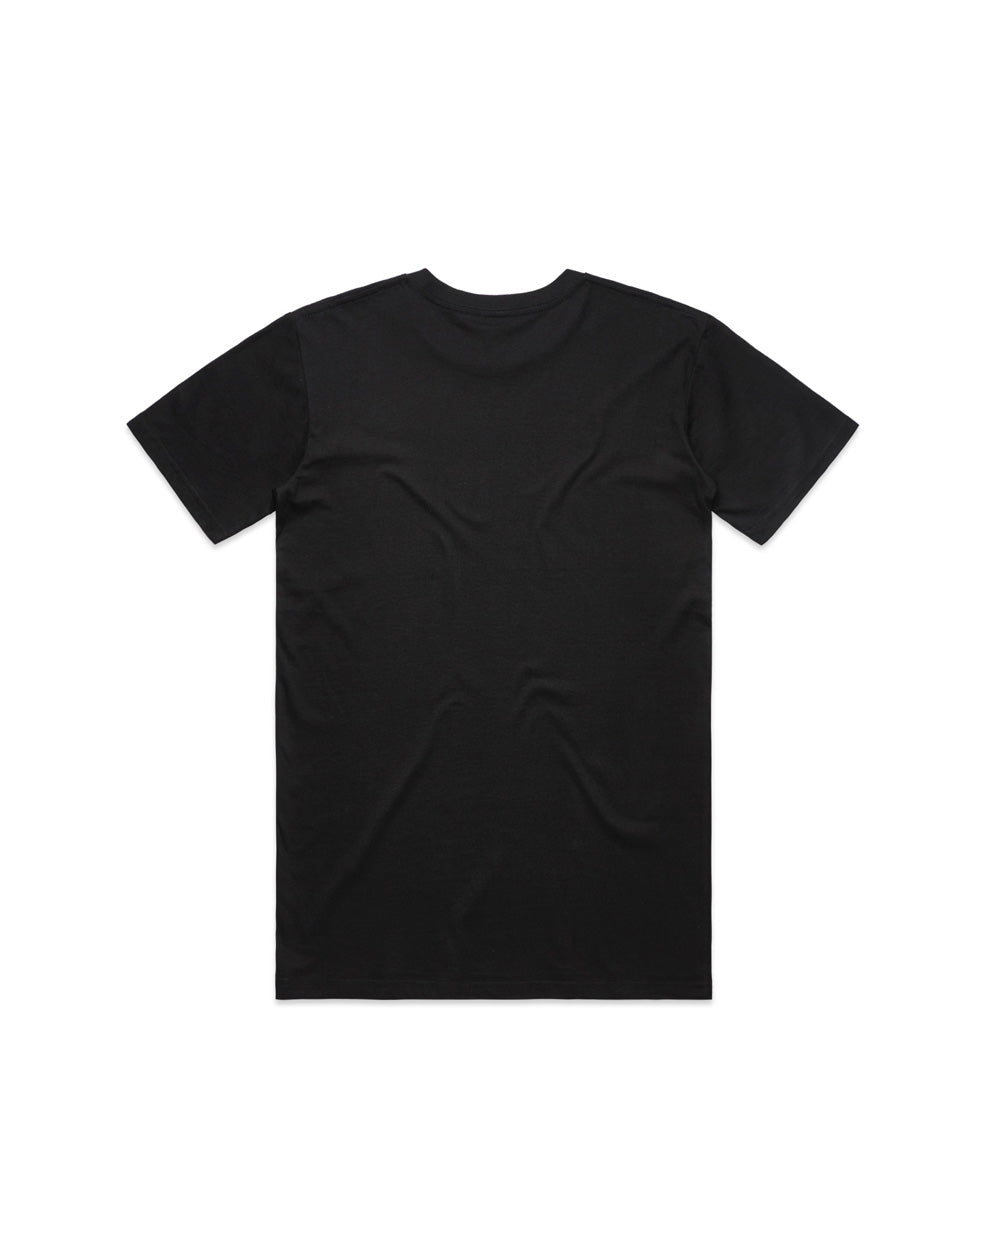 Finshui Shuuui Black Tee - Threadbox